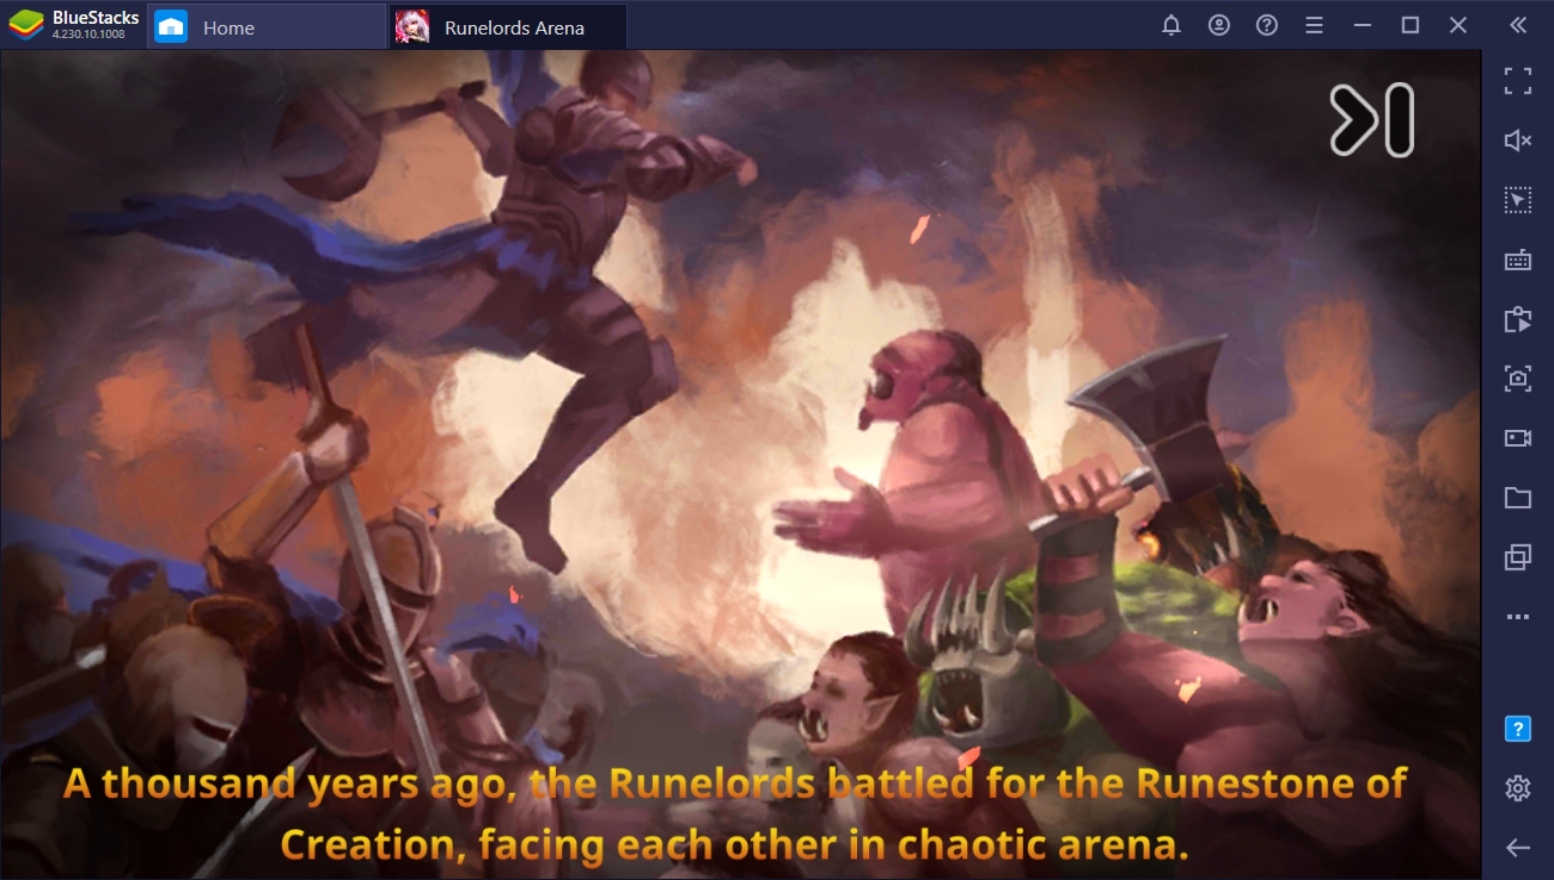 How to Play Runelords Arena on PC with BlueStacks